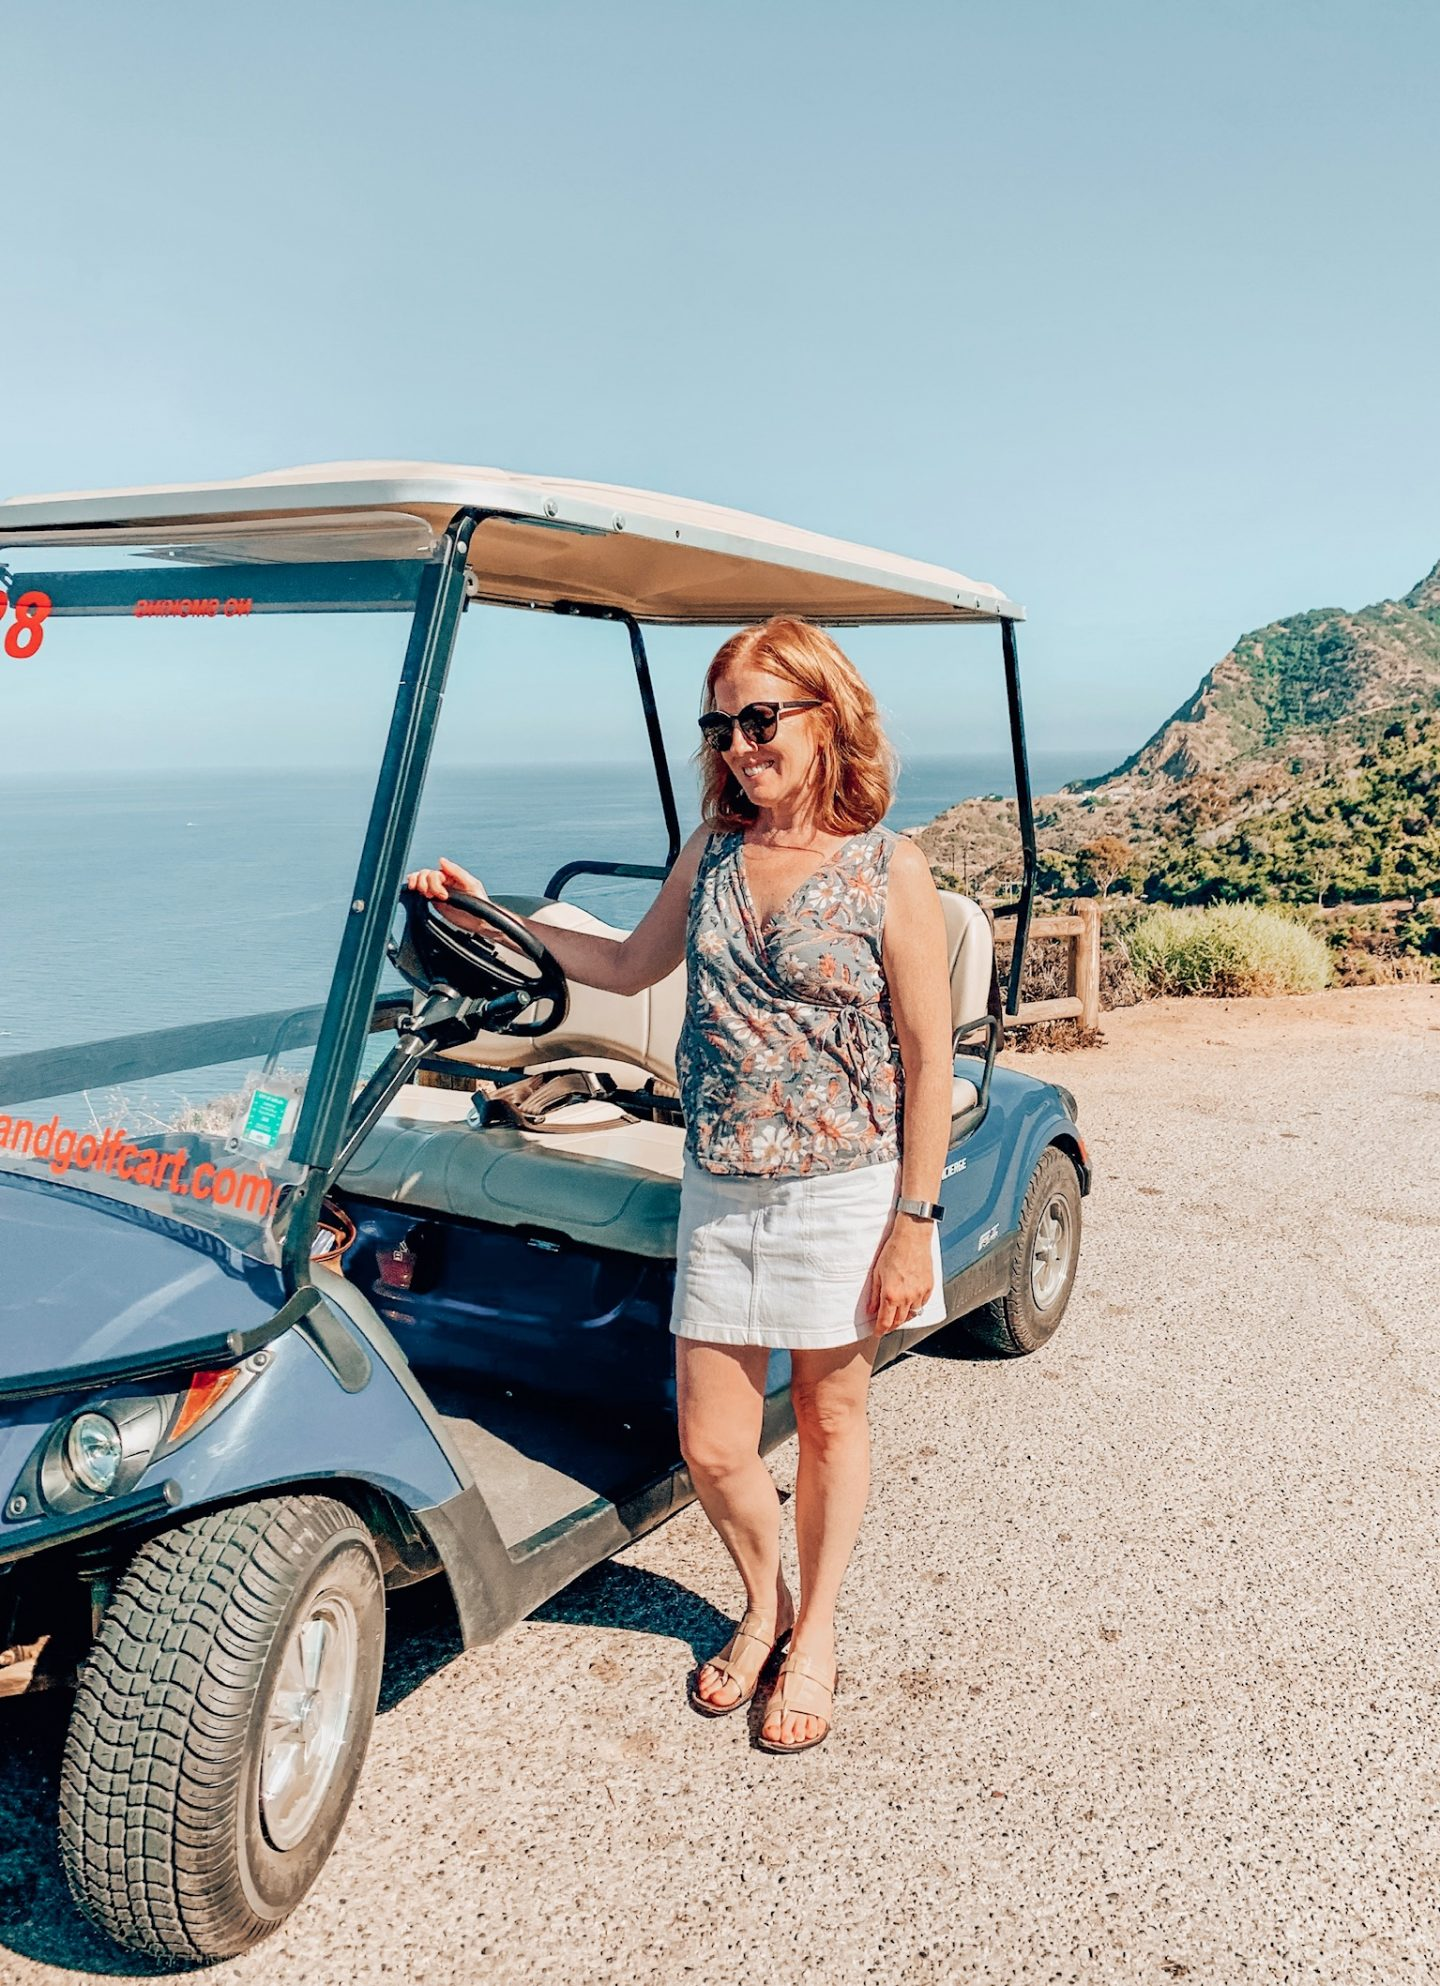 Renting a golf cart on Catalina Island!